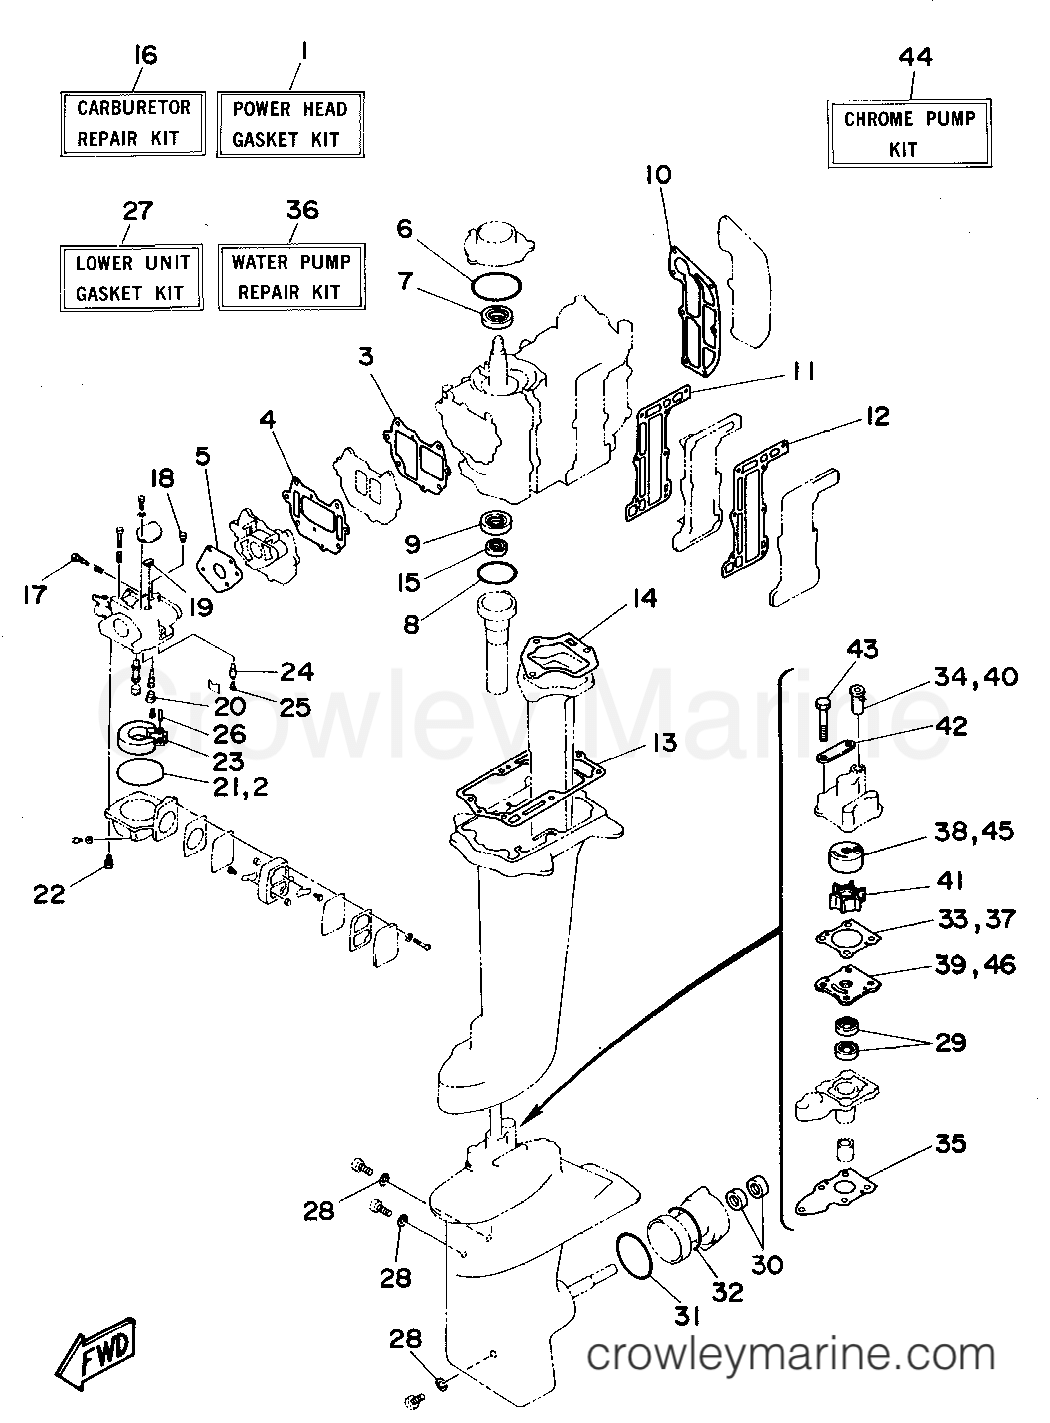 Wooden Go Kart Kits With Engines | Wiring Diagram Database